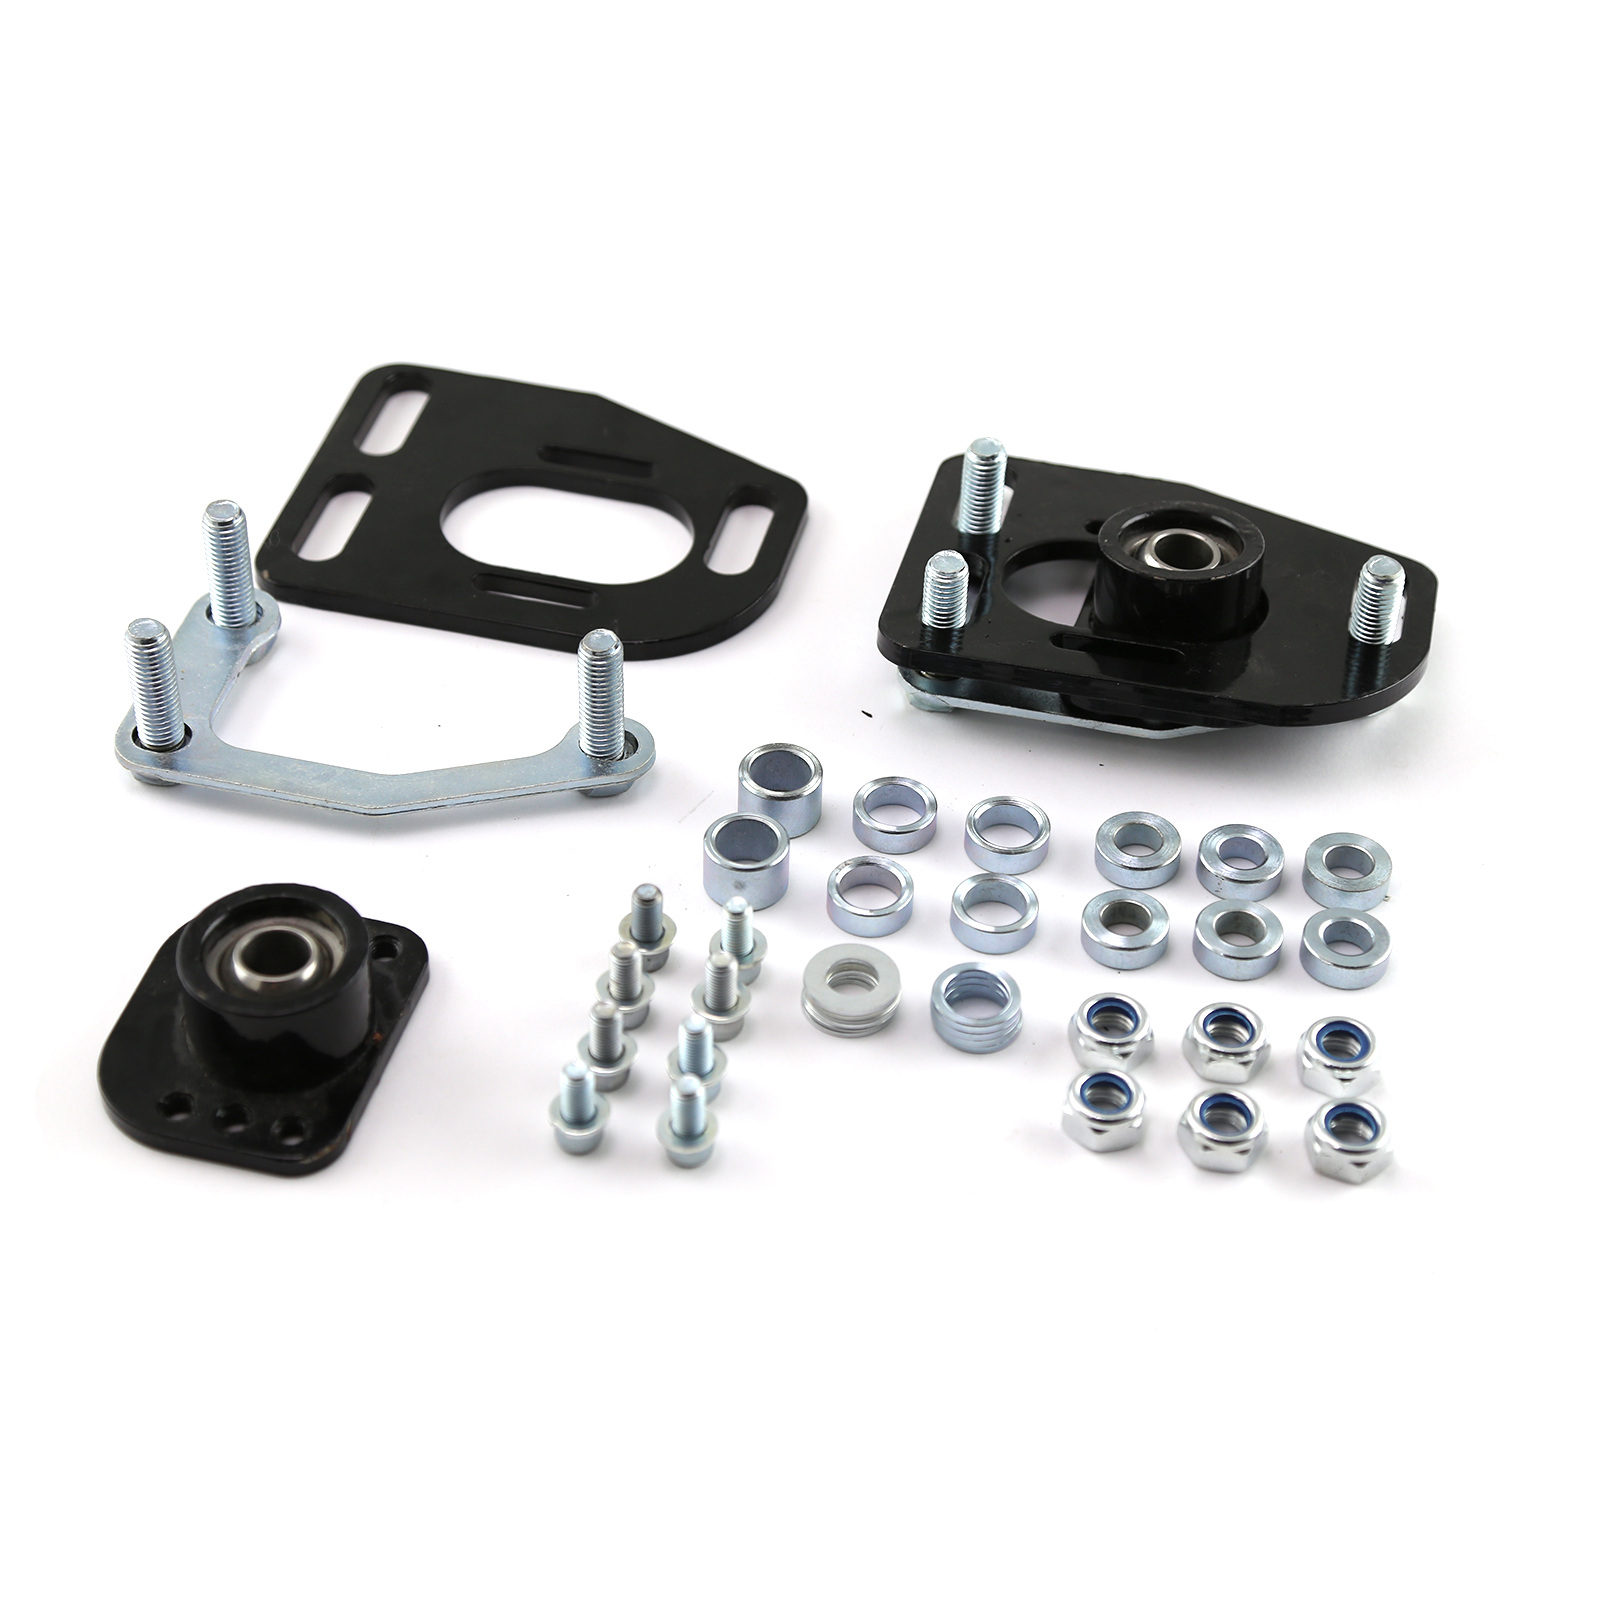 Mustang 1979-1989 Caster Camber Plate Kit Alignment V6 V8